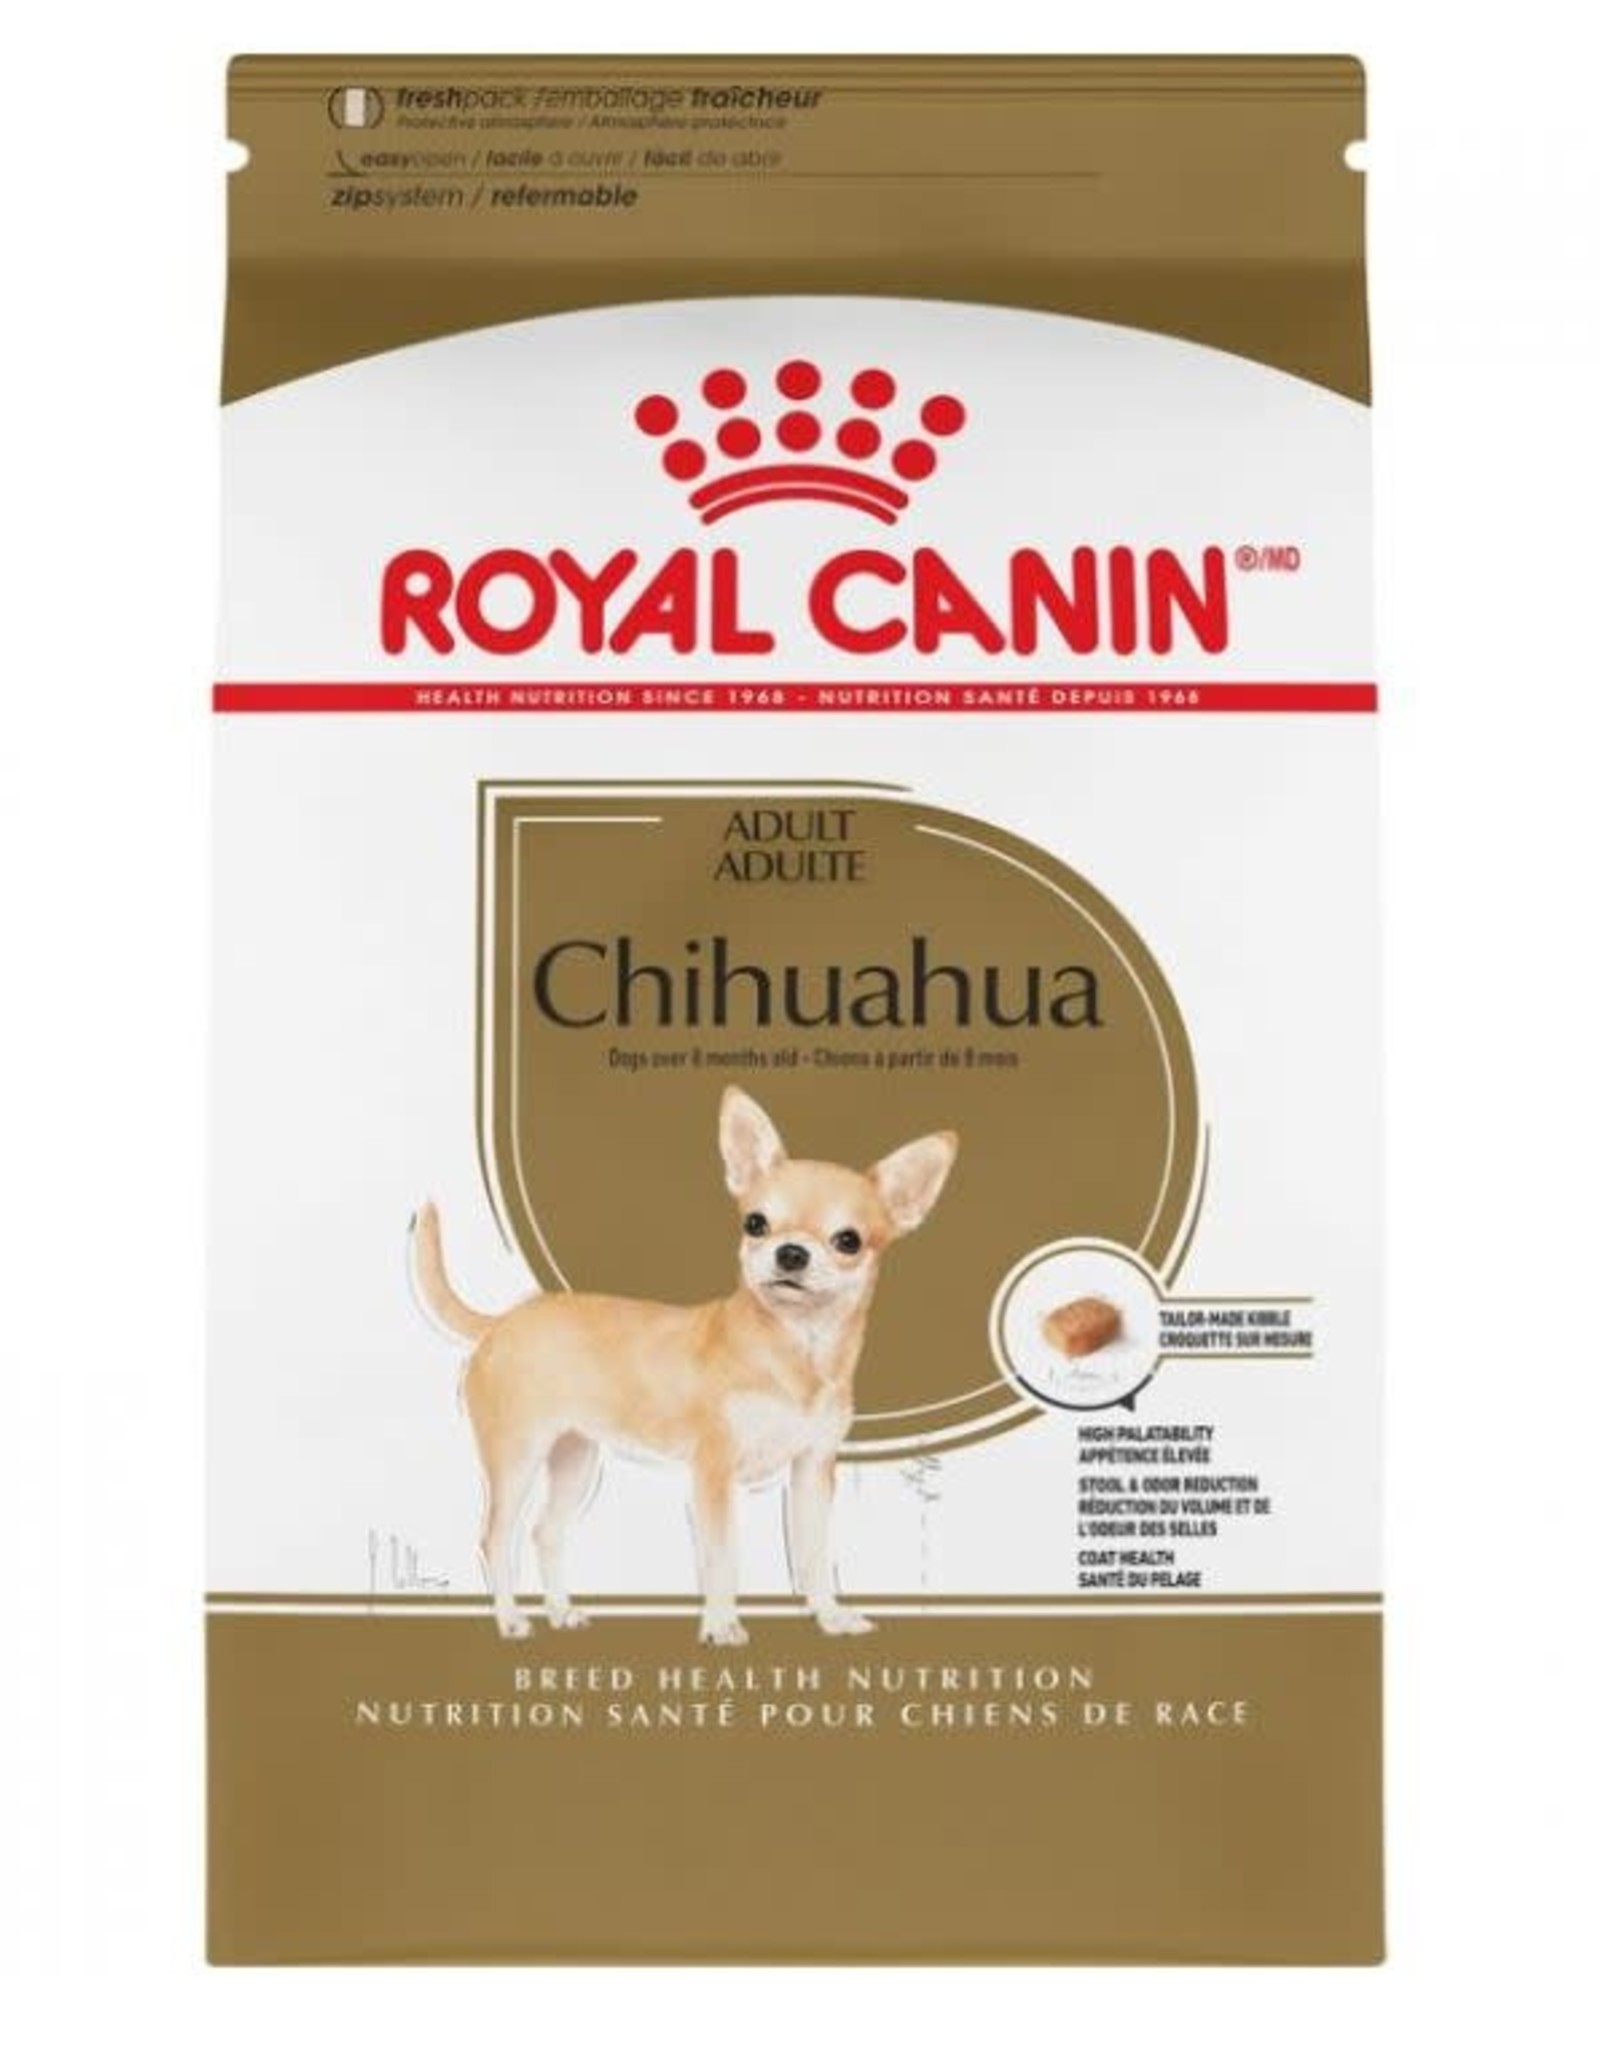 royal canin Royal Canin Chihuahua Adult Dog Food 10lb